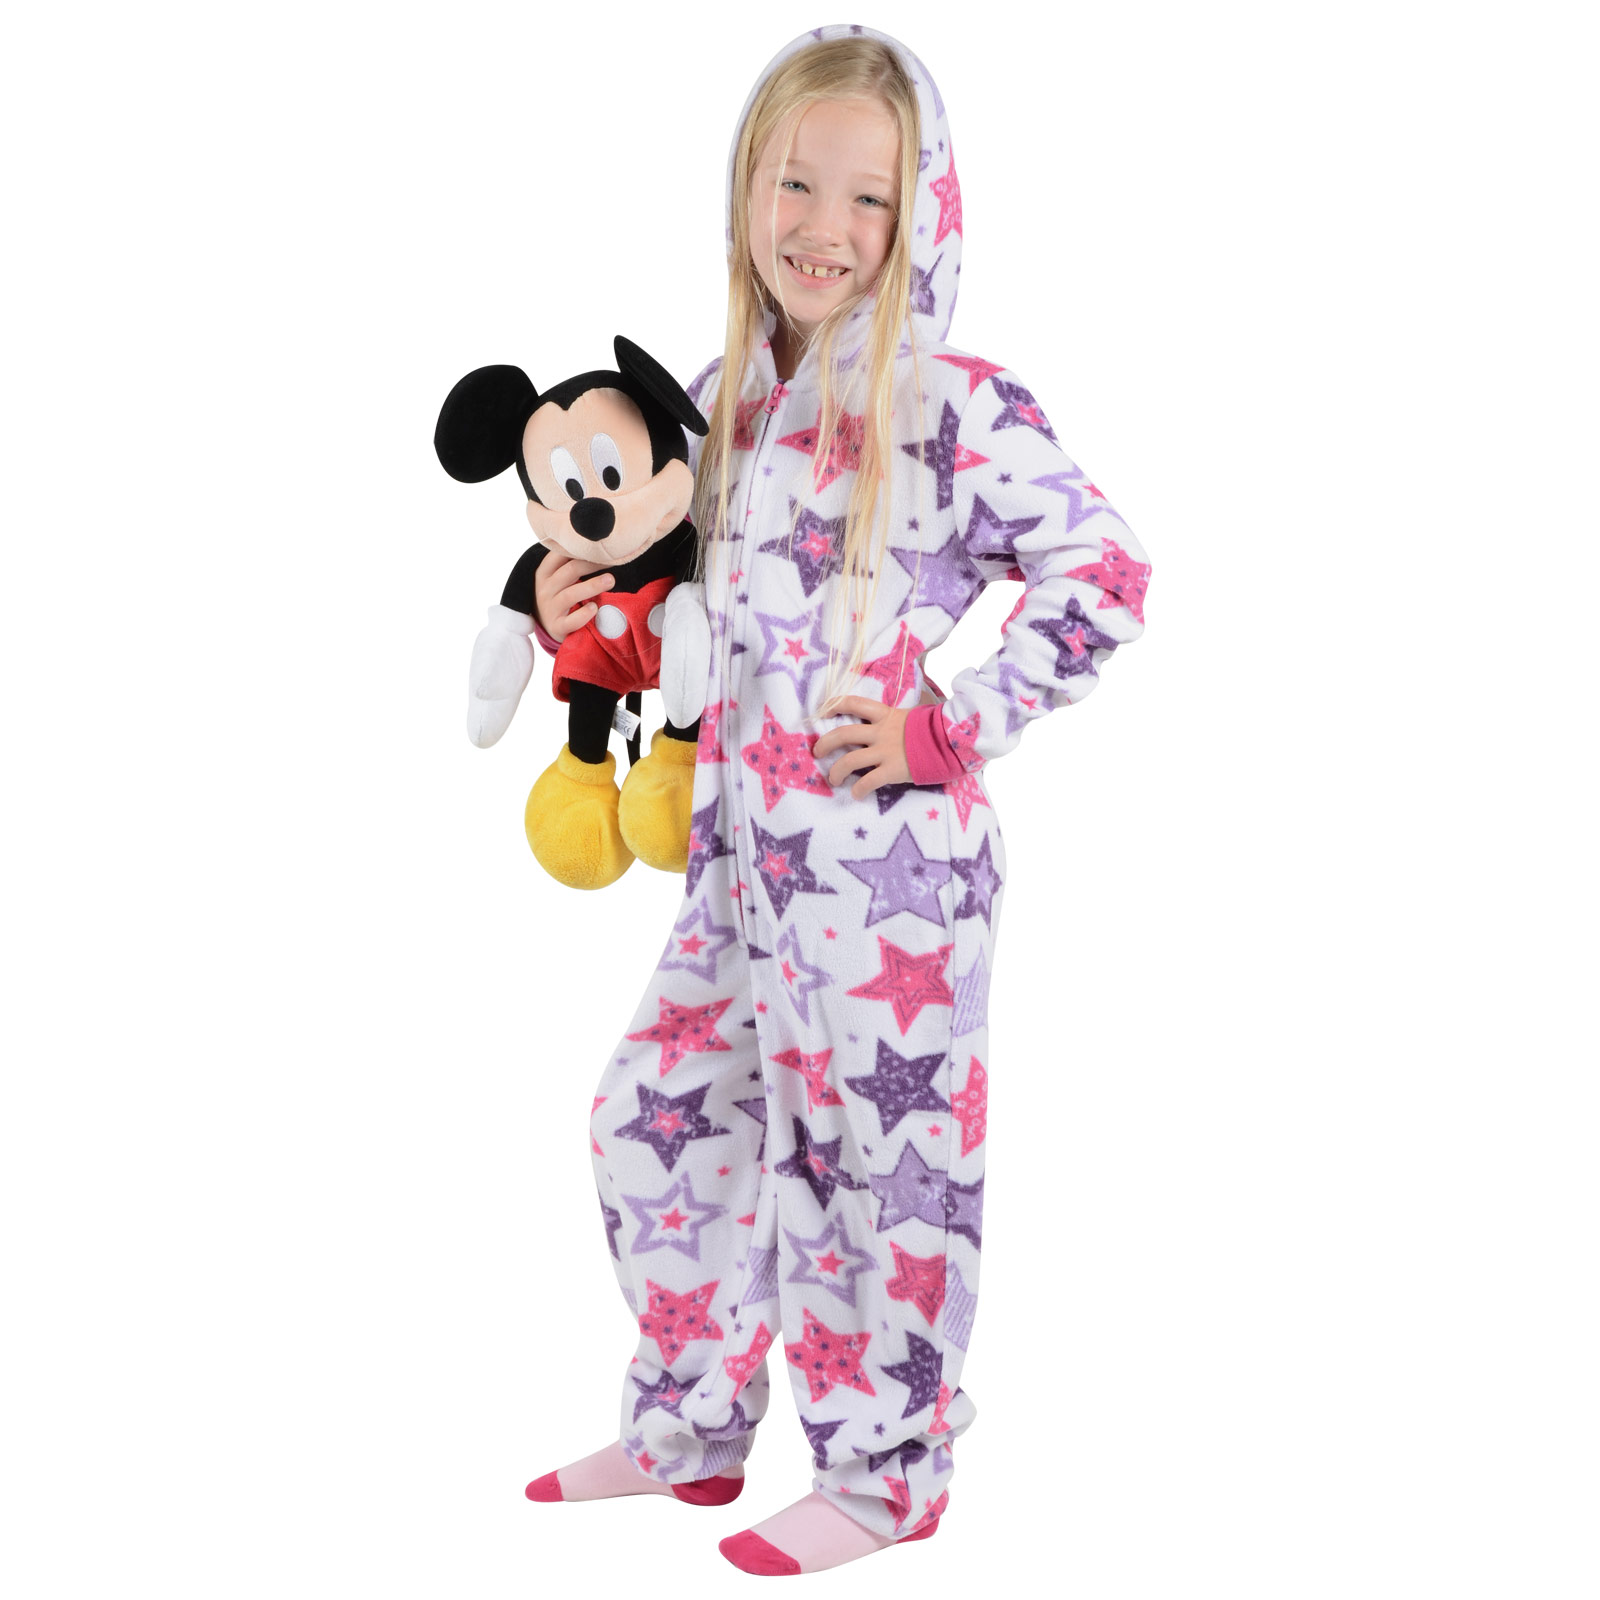 Girls Cosy Fleece Onesie All In One Pyjamas Sleepsuit PJs Kids ...